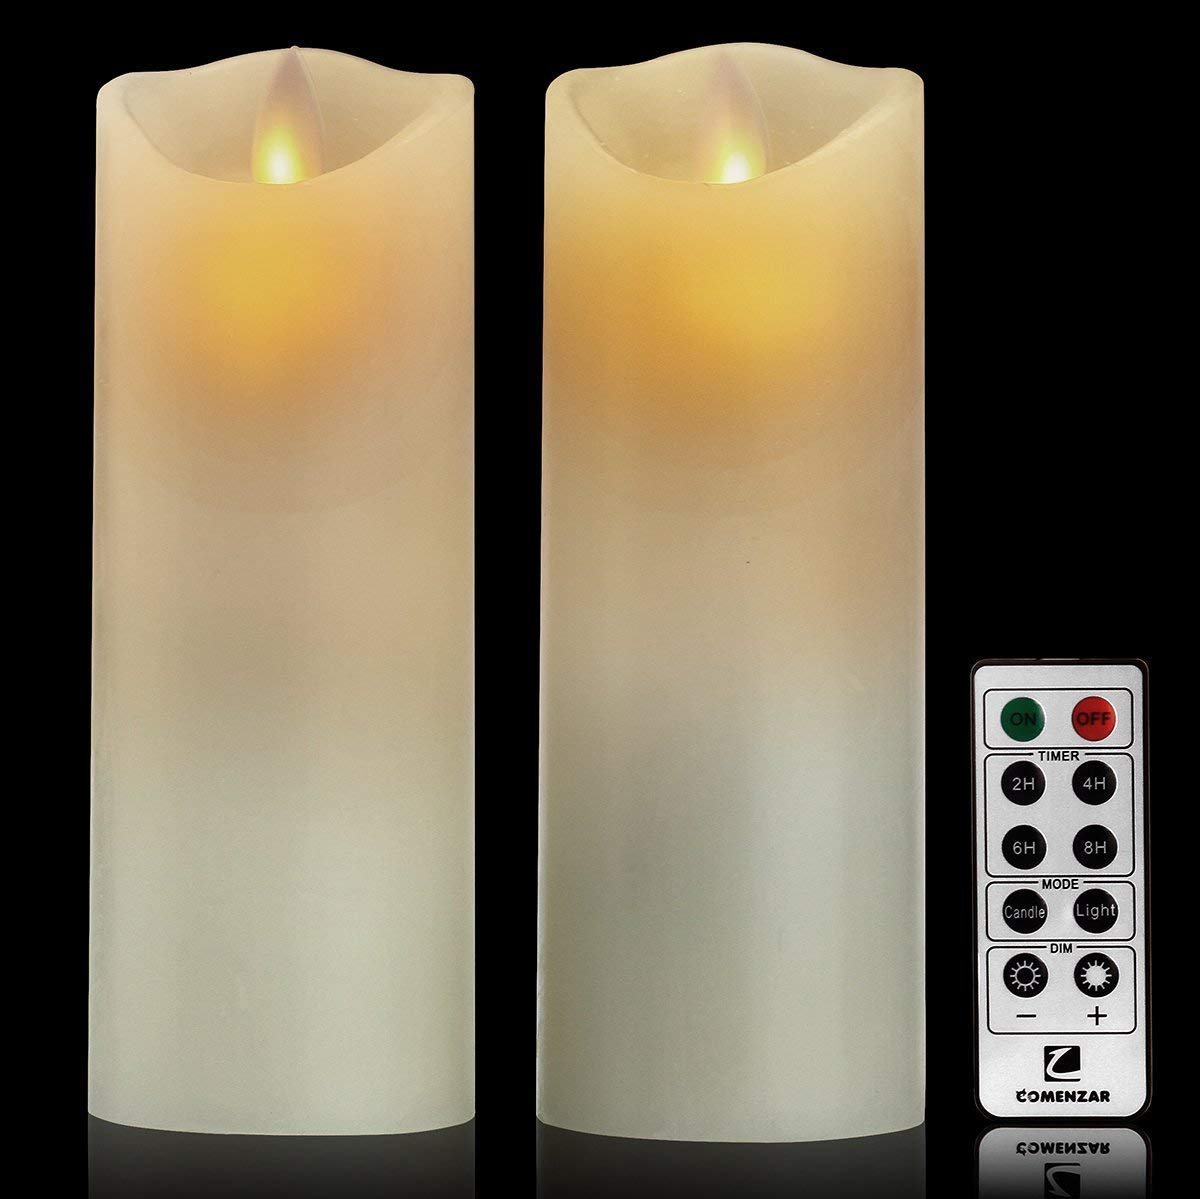 comenzar Flameless Candles Flickering Flameless Candles LED Candles Set of 2-6inch x 2pcs Battery Candles Real Wax Pillar with 10-key Remote Control White Color - 2/4/6/8 Hours Timer by comenzar